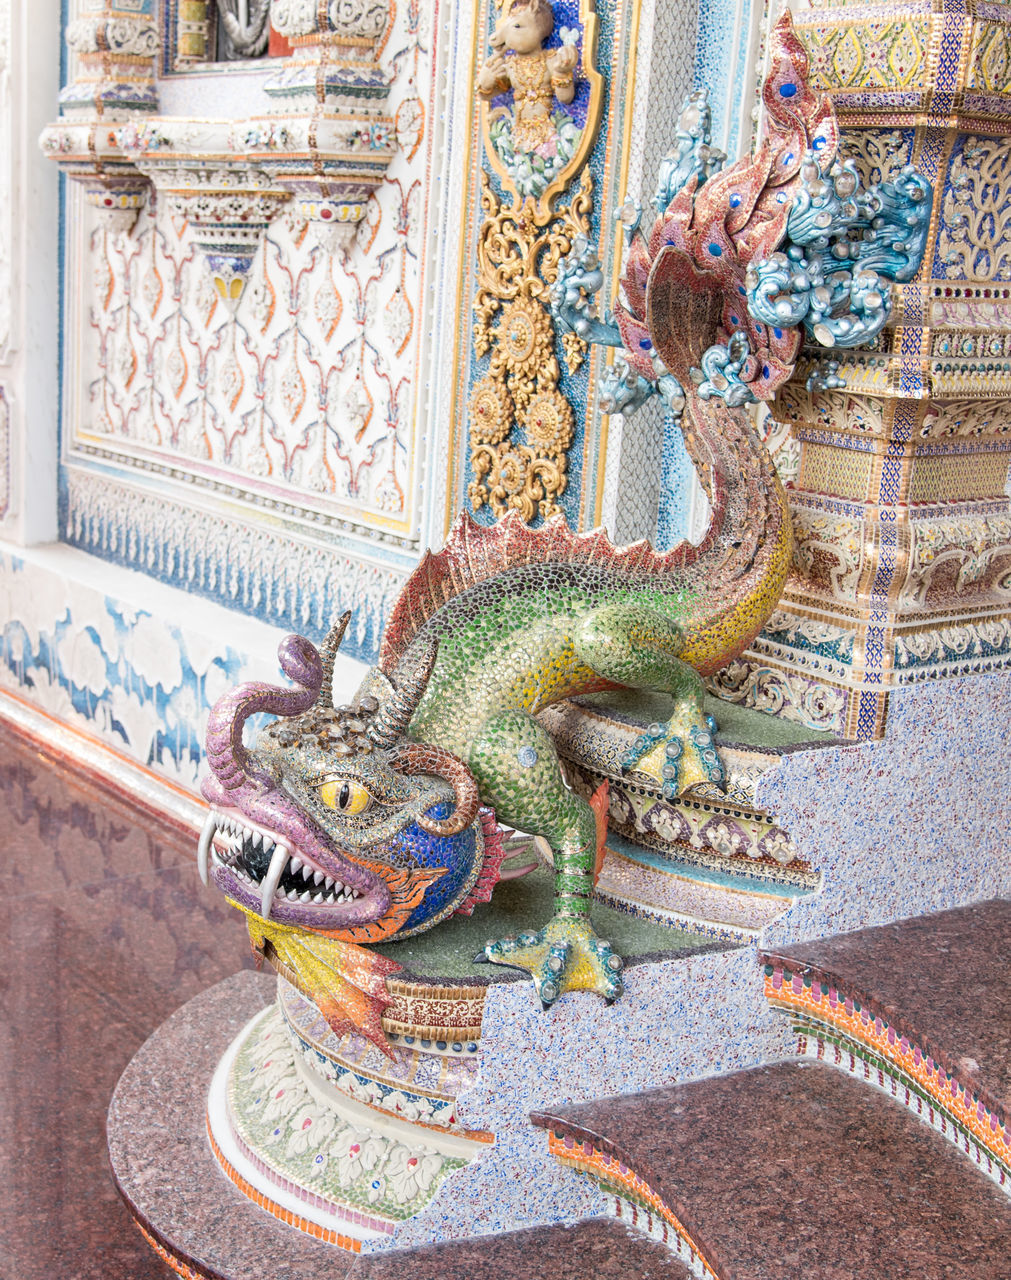 animal representation, art and craft, dragon, statue, sculpture, ornate, religion, no people, place of worship, chinese dragon, day, spirituality, multi colored, indoors, architecture, close-up